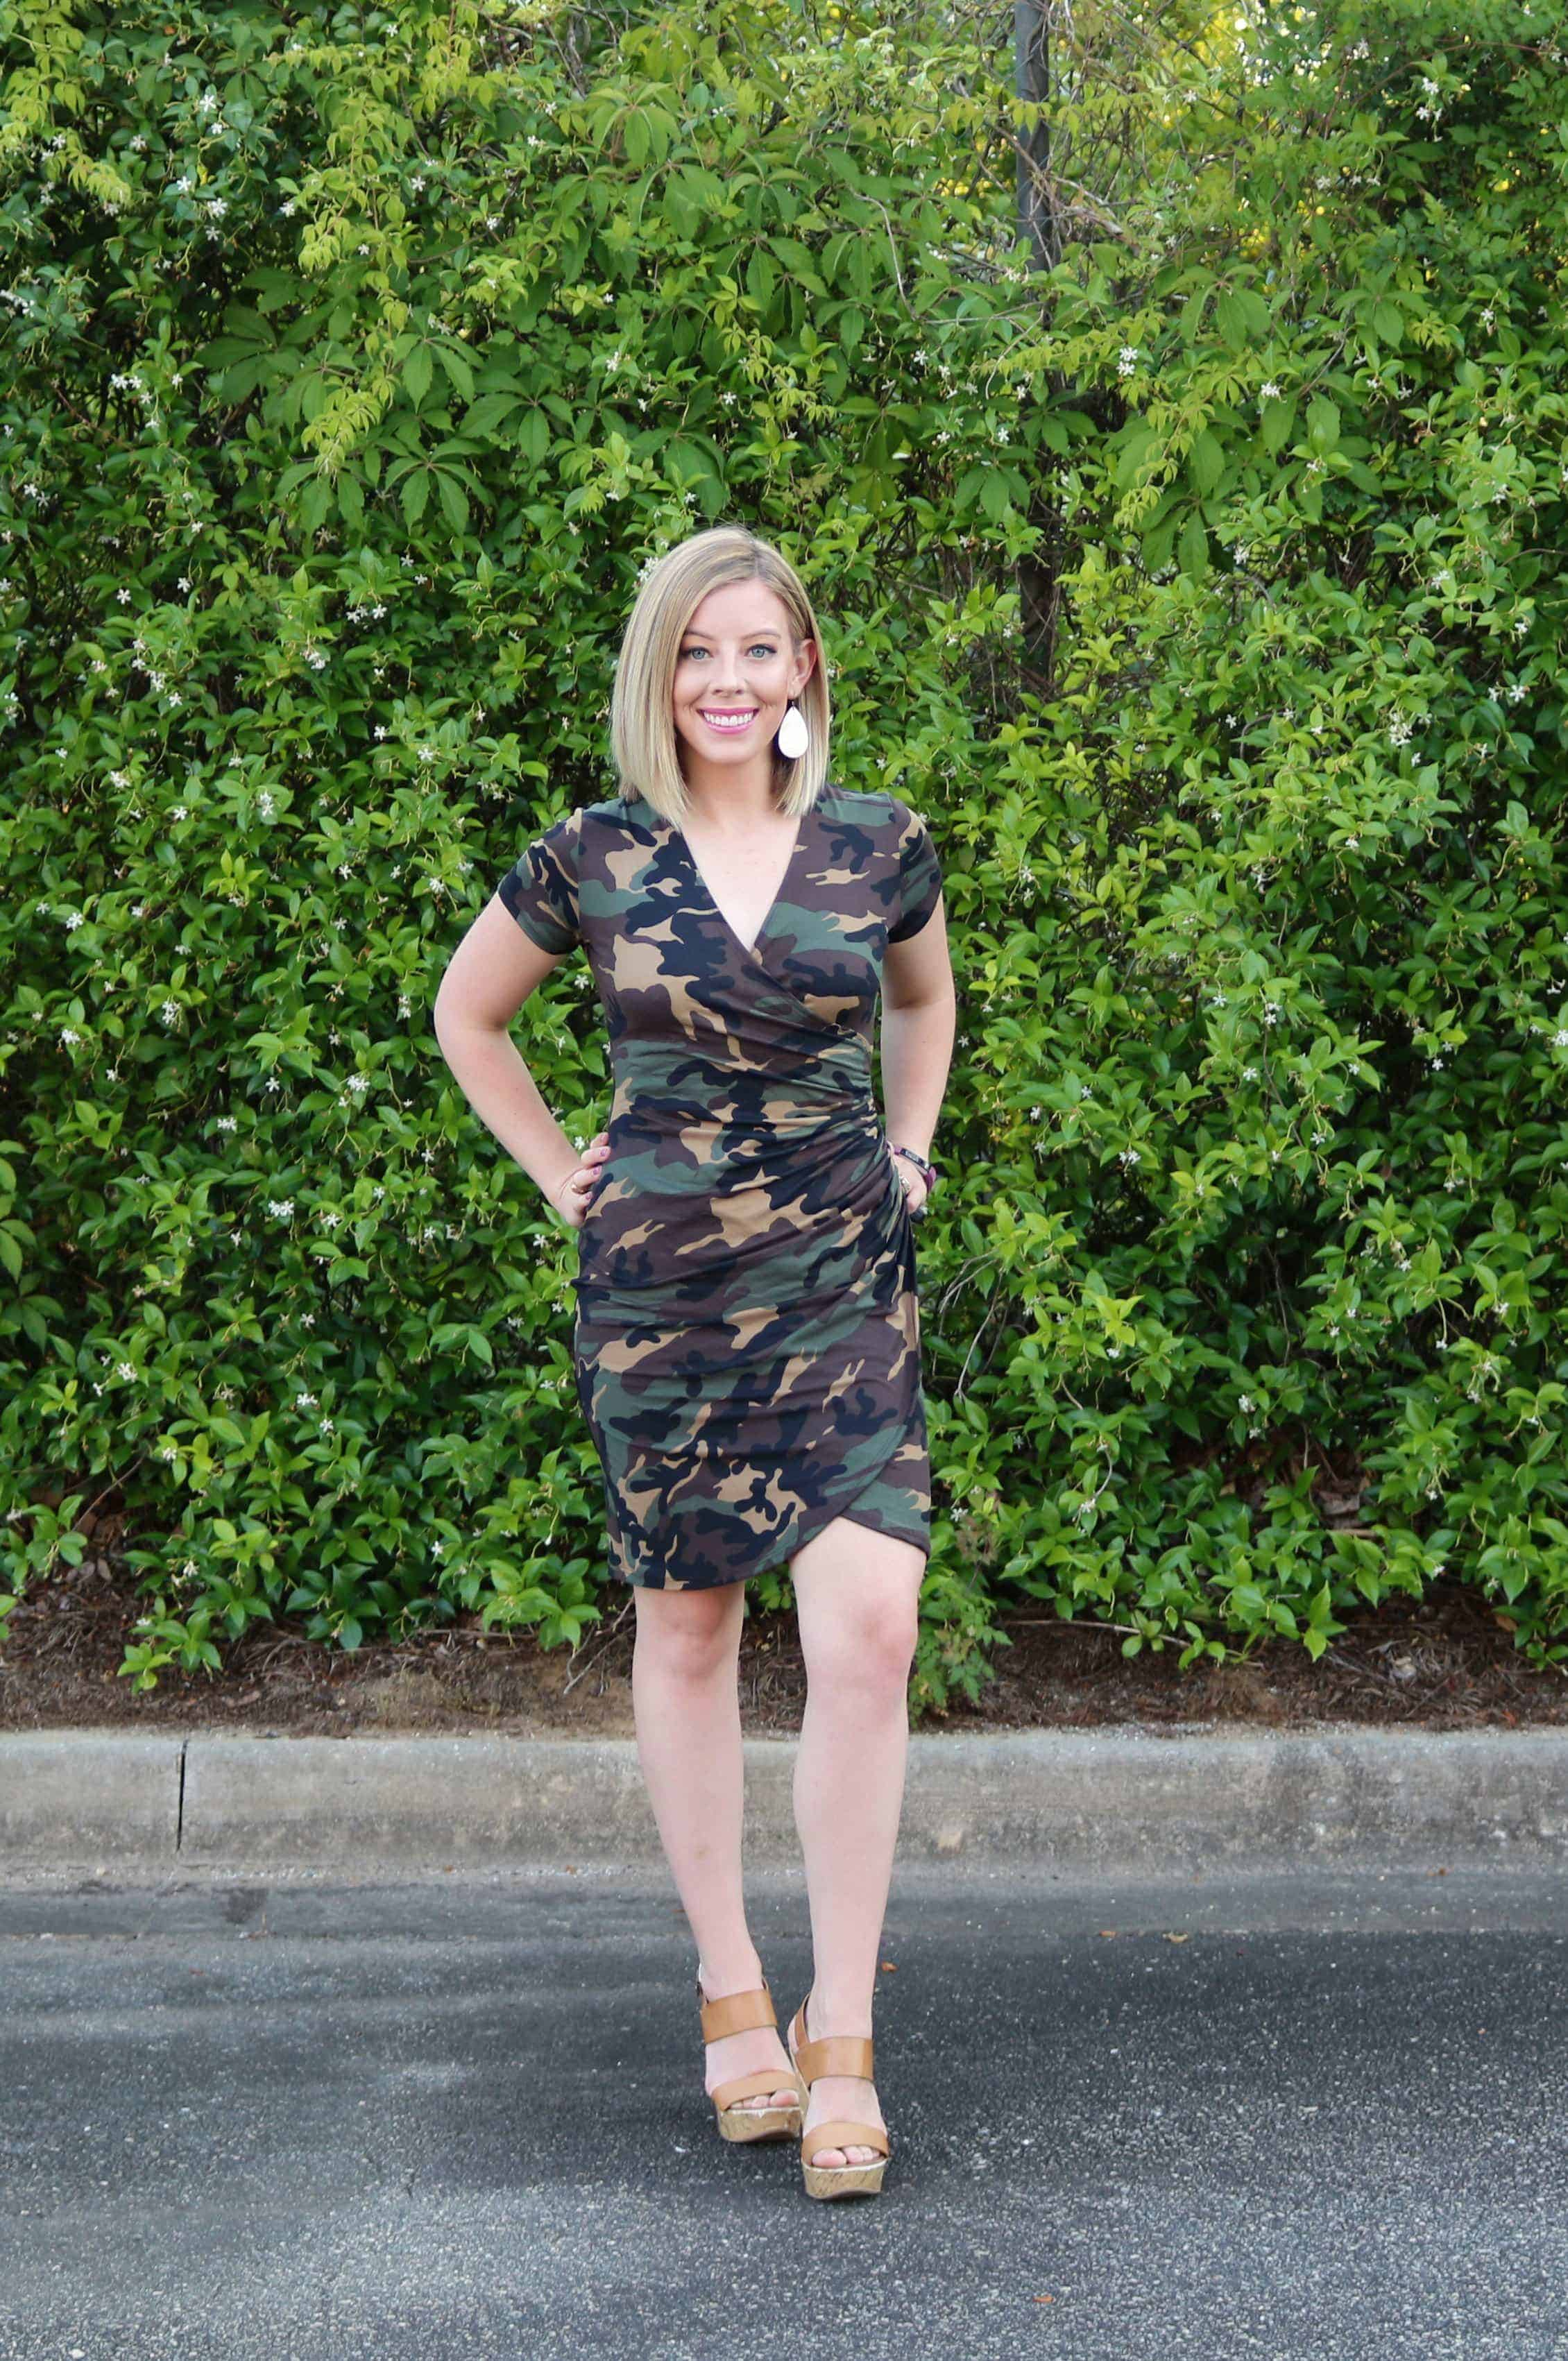 Looking for the latest fashion trends like this camo wrap dress? Check out my roundup of Summer 2019 Fashion Trends to Wear including cute and affordable outfit ideas you can find at your local Bealls Outlet! #ad #beallsoutlet #summerfashion #springfashion #cuteoutfits